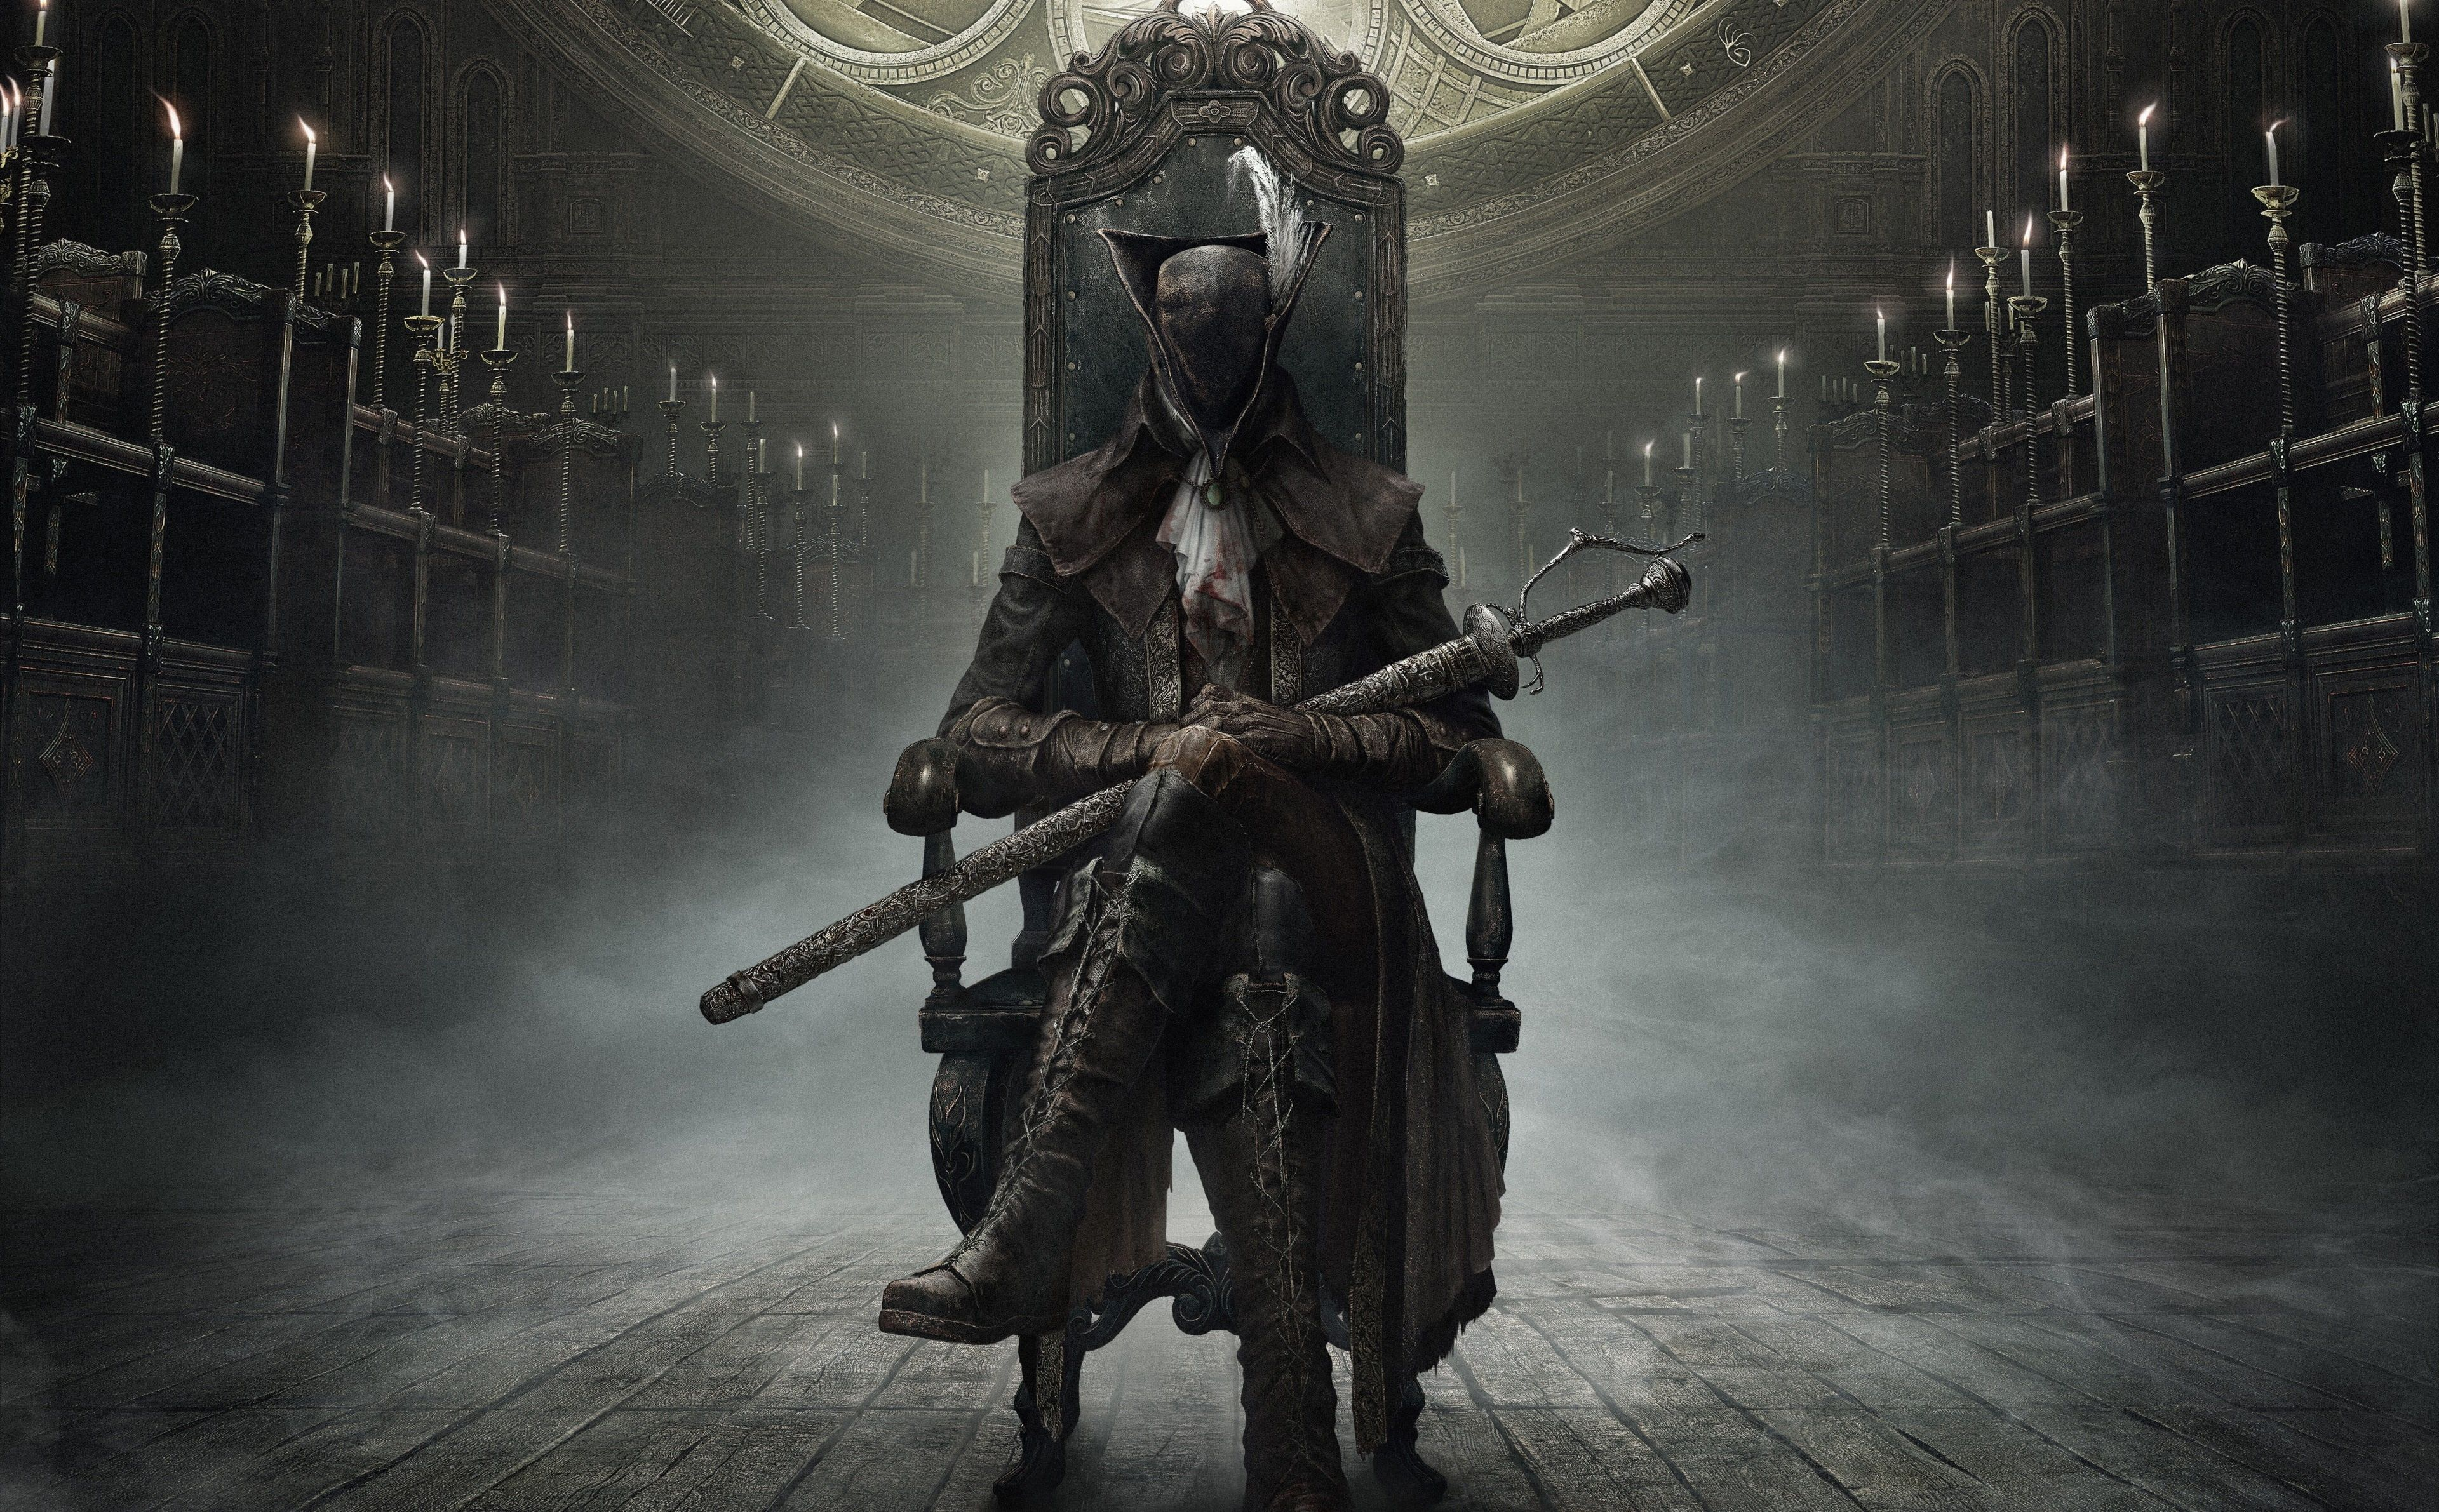 Windows Wallpaper Bloodborne Imagenes Para Pc Postales De Buenas Noches Referencias